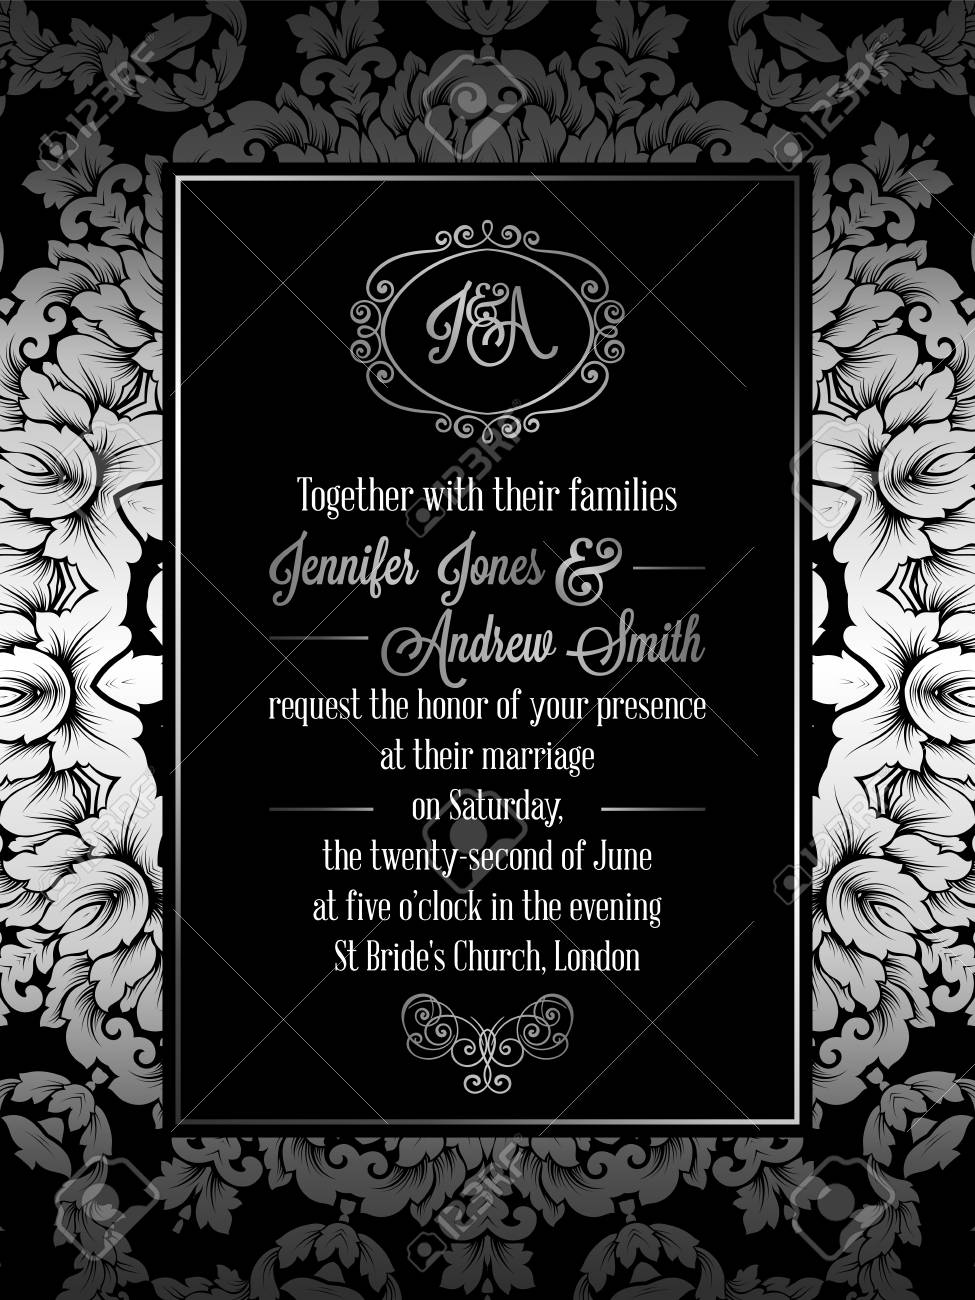 Vintage Baroque Style Wedding Invitation Card Template Elegant Royalty Free Cliparts Vectors And Stock Illustration Image 81581698